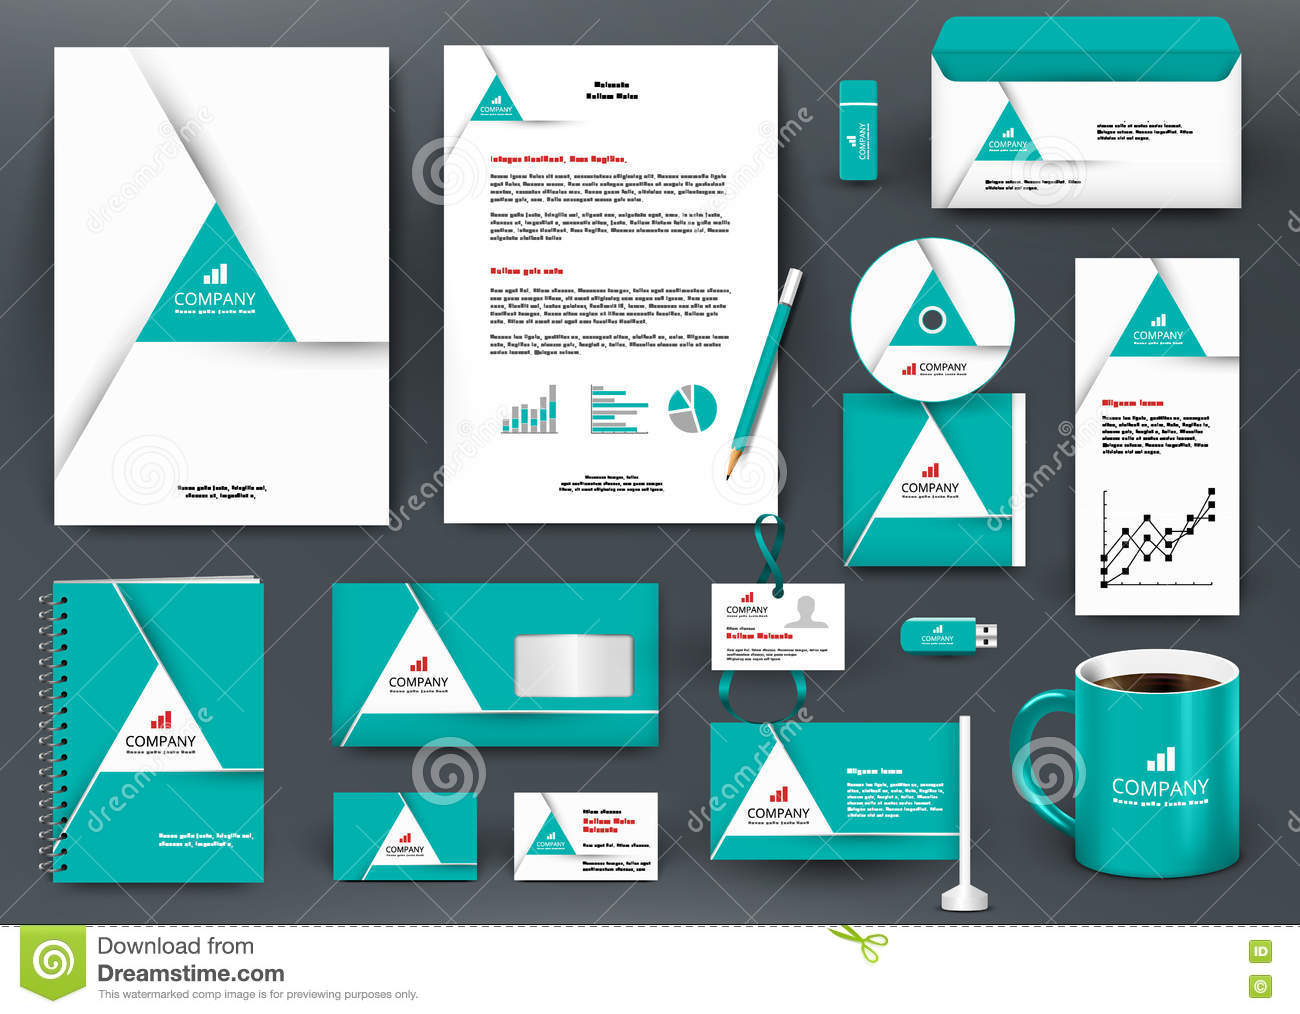 Professional Universal Green Branding Design Kit With Triangle Origami  Element.  Professional Business Profile Template